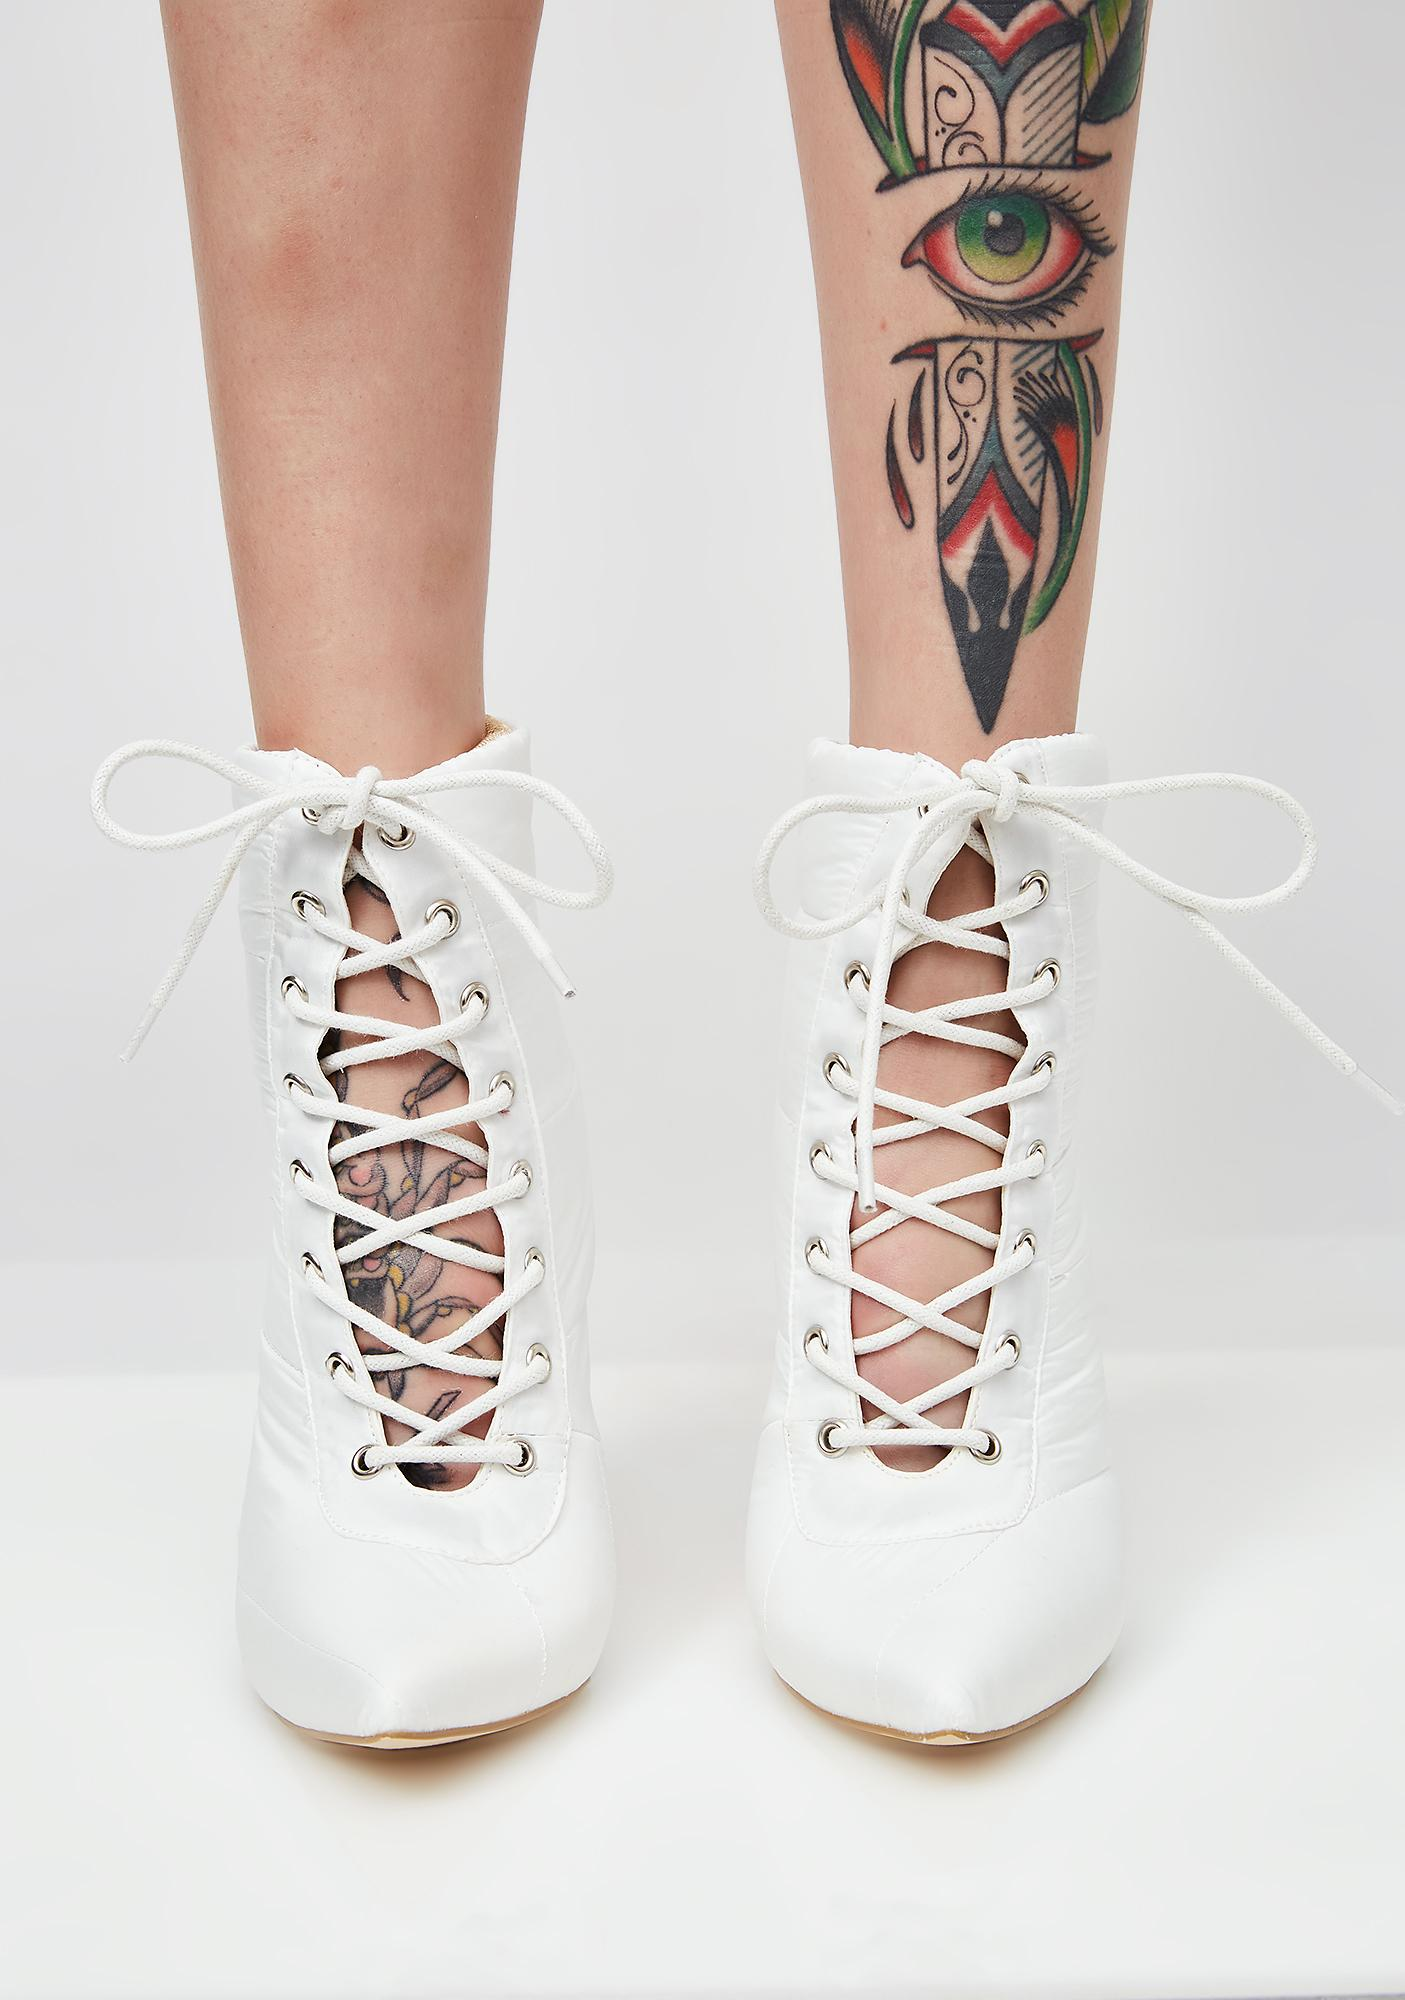 Icy Street Cred Ankle Boots